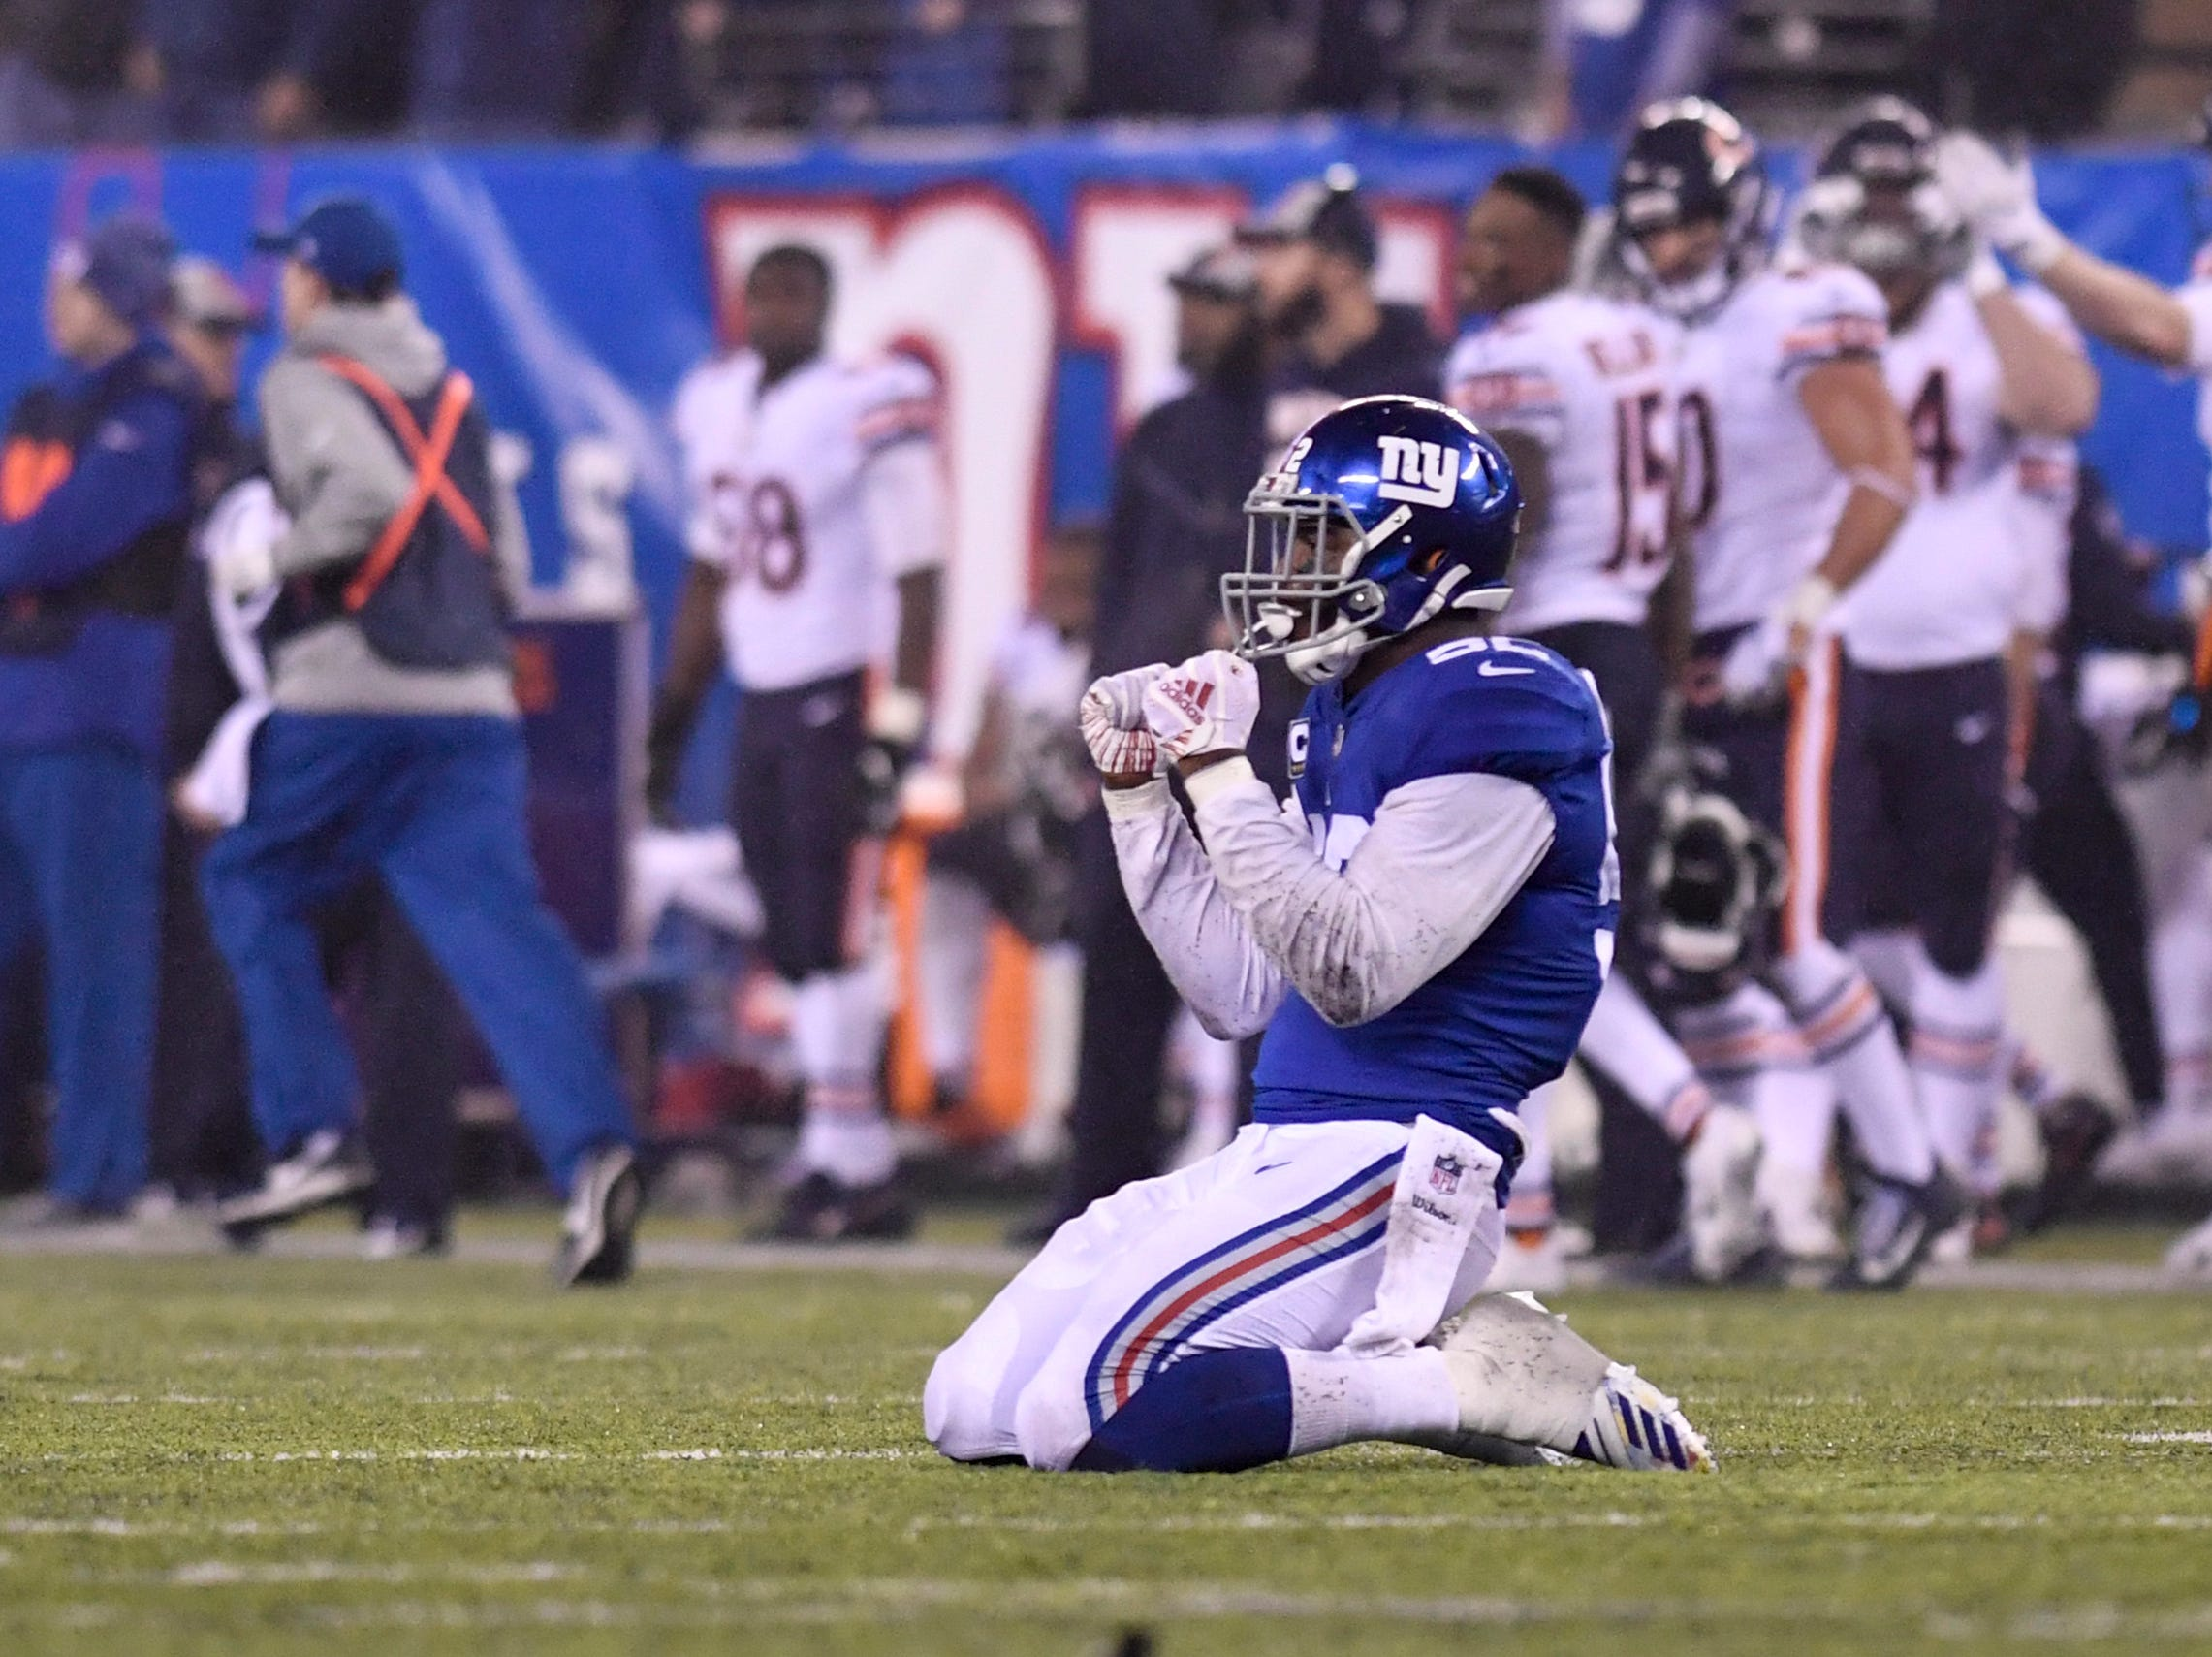 New York Giants linebacker Alec Ogletree (52) holds his fists up in celebration as the Giants defense stop the Chicago Bears in overtime. The New York Giants defeat the Chicago Bears in overtime 30-27 on Sunday, Dec. 2, 2018, in East Rutherford.